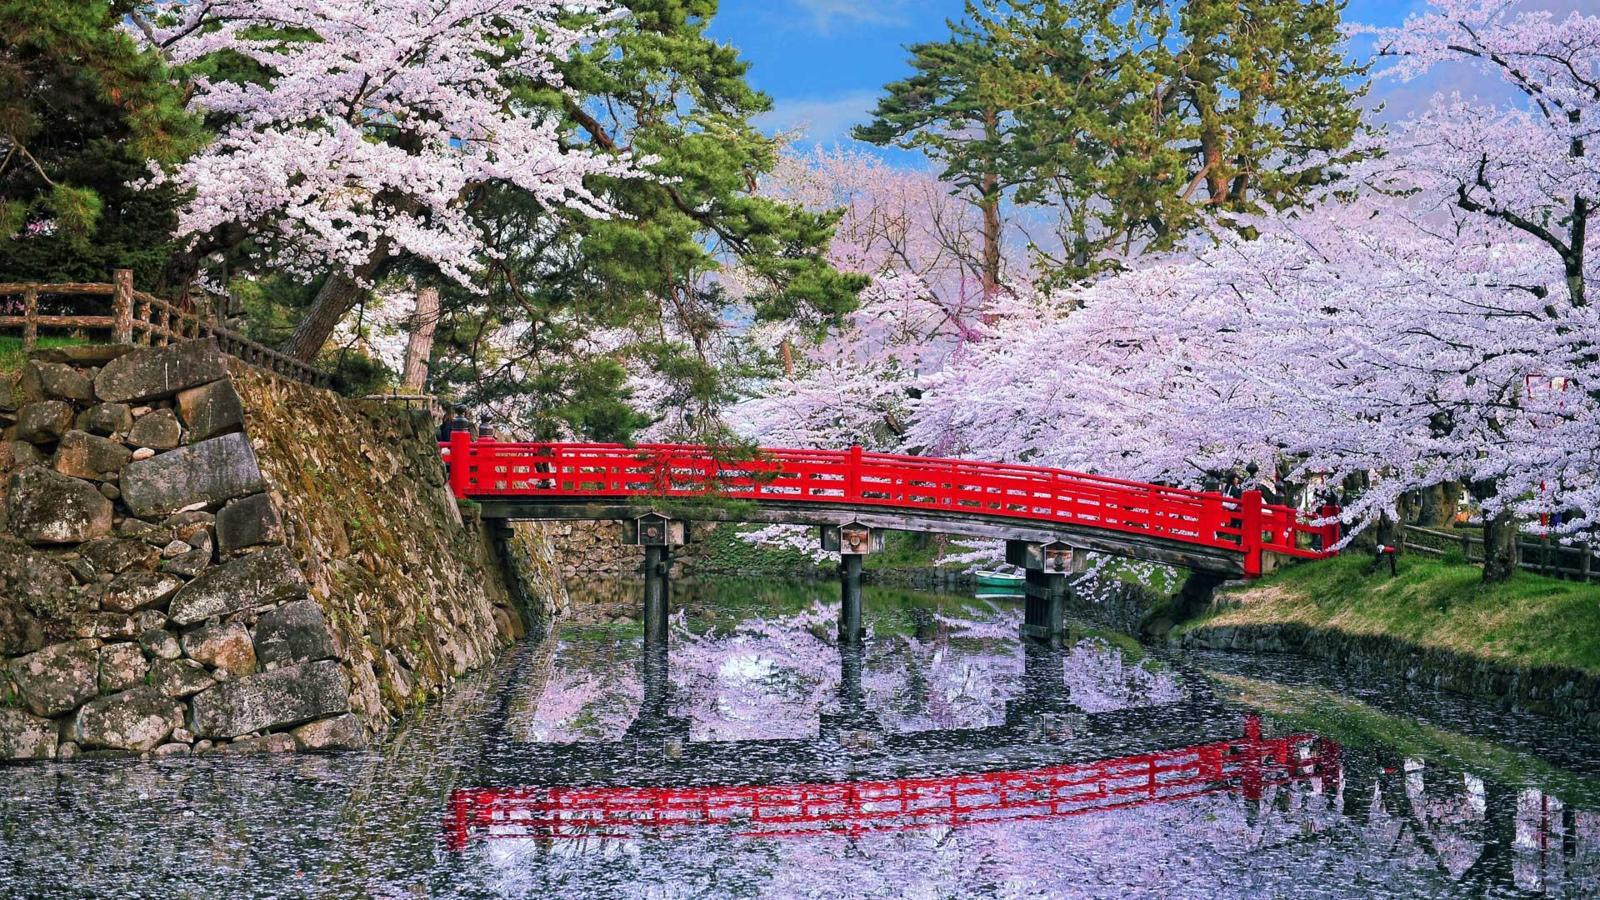 Cherry blossoms around the world - While Japan is home to some of the most well-known cherry blossom scenes, many cities celebrate spring's arrival with these beautiful blooming trees. //BBC Travel